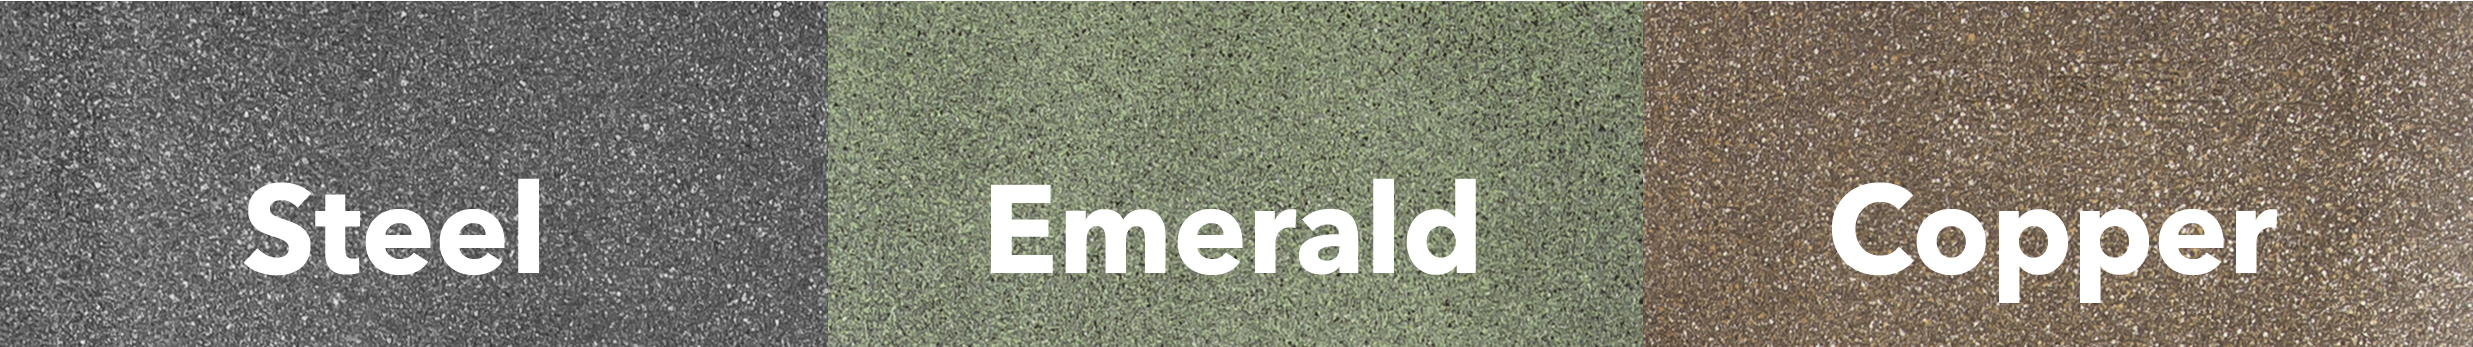 Granite mats are available in Steel, Emerald, and Copper.